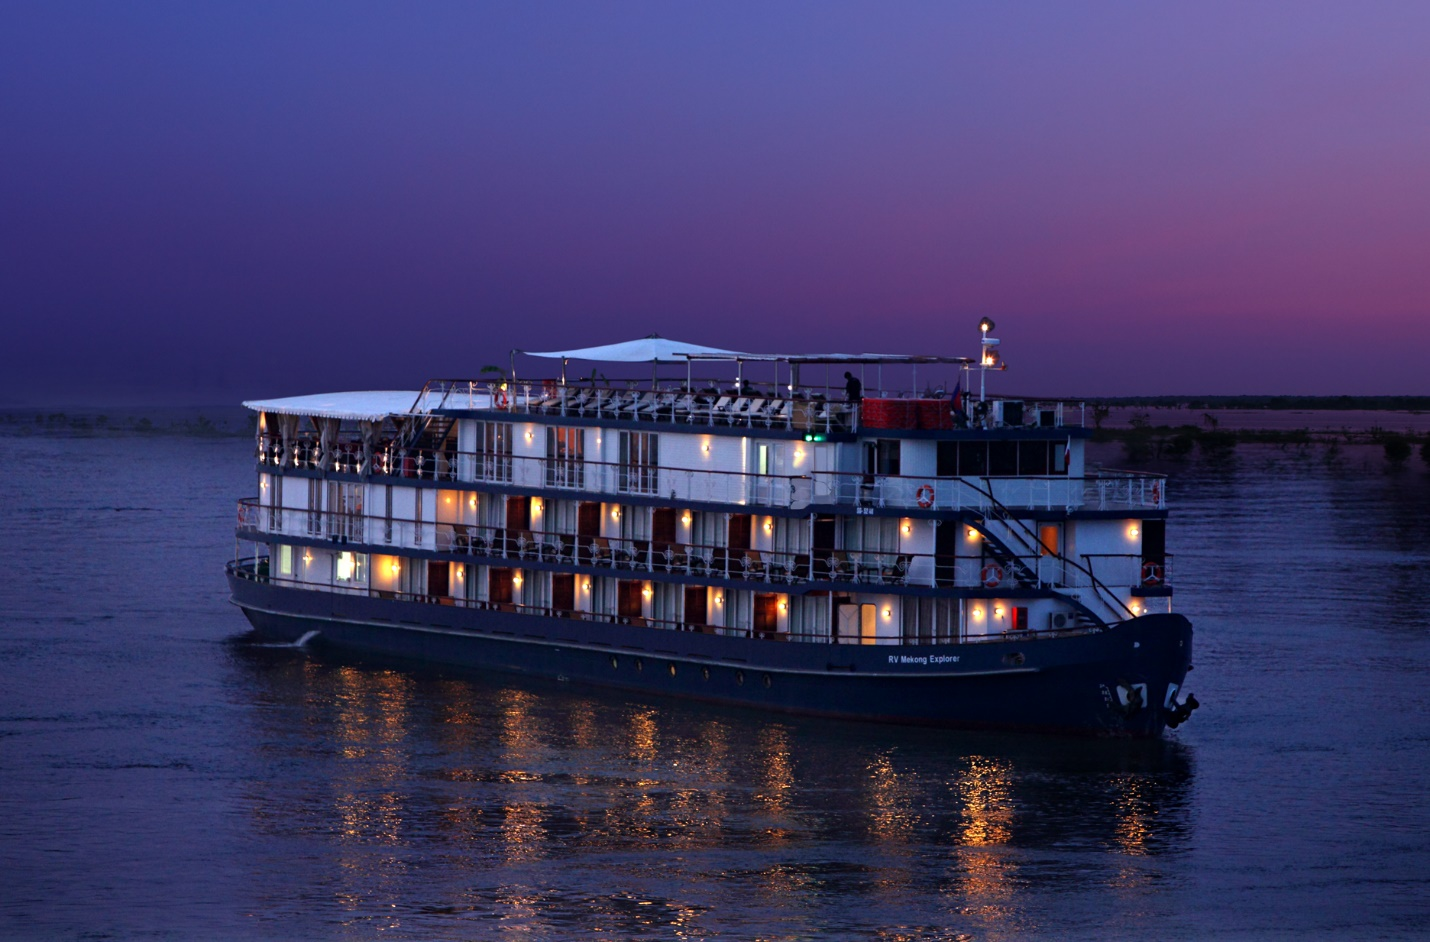 Jayavarman Cruise in sunset